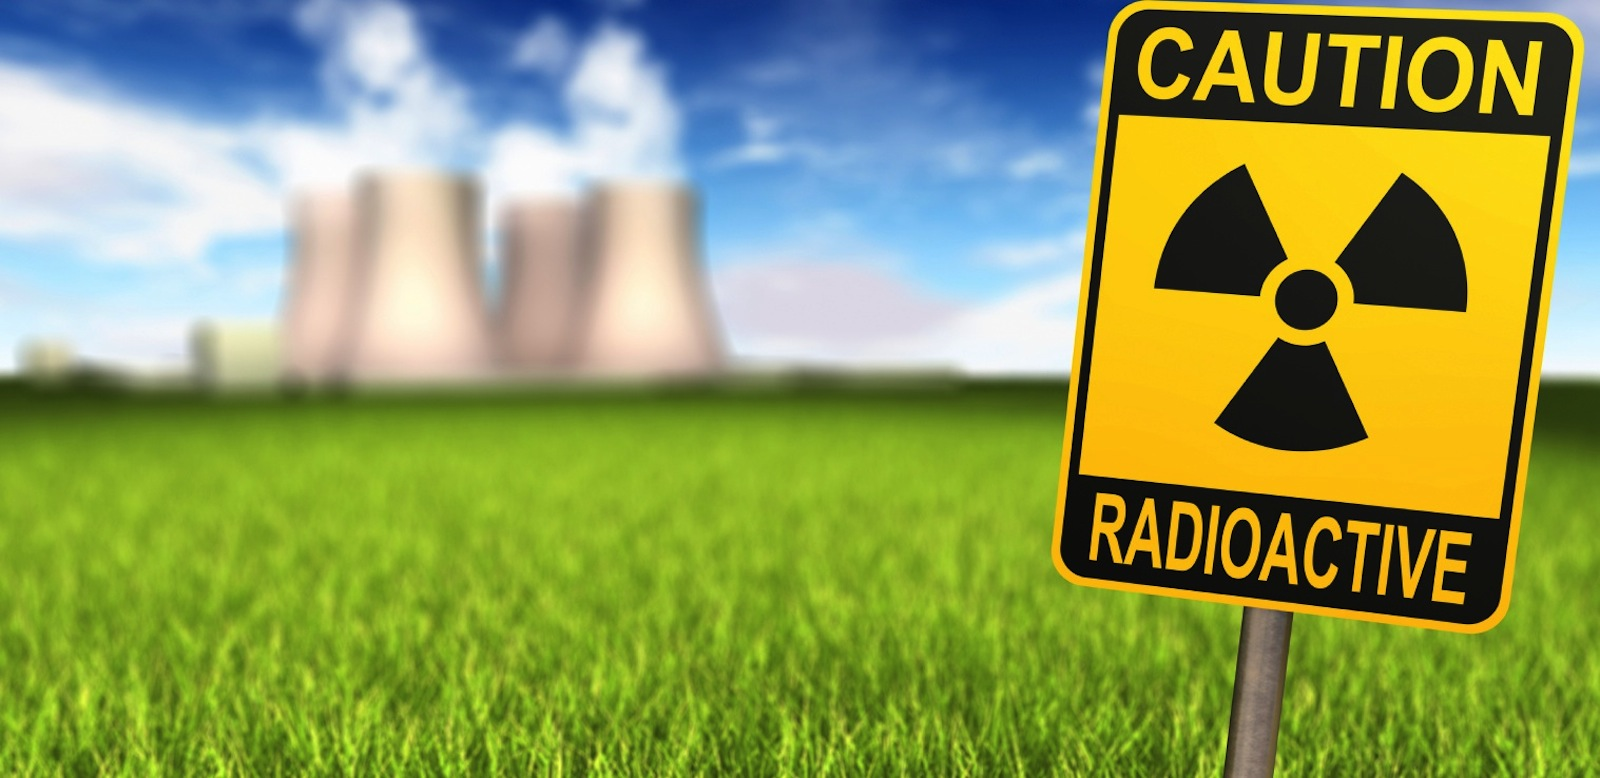 Cool facts about radioactive dating